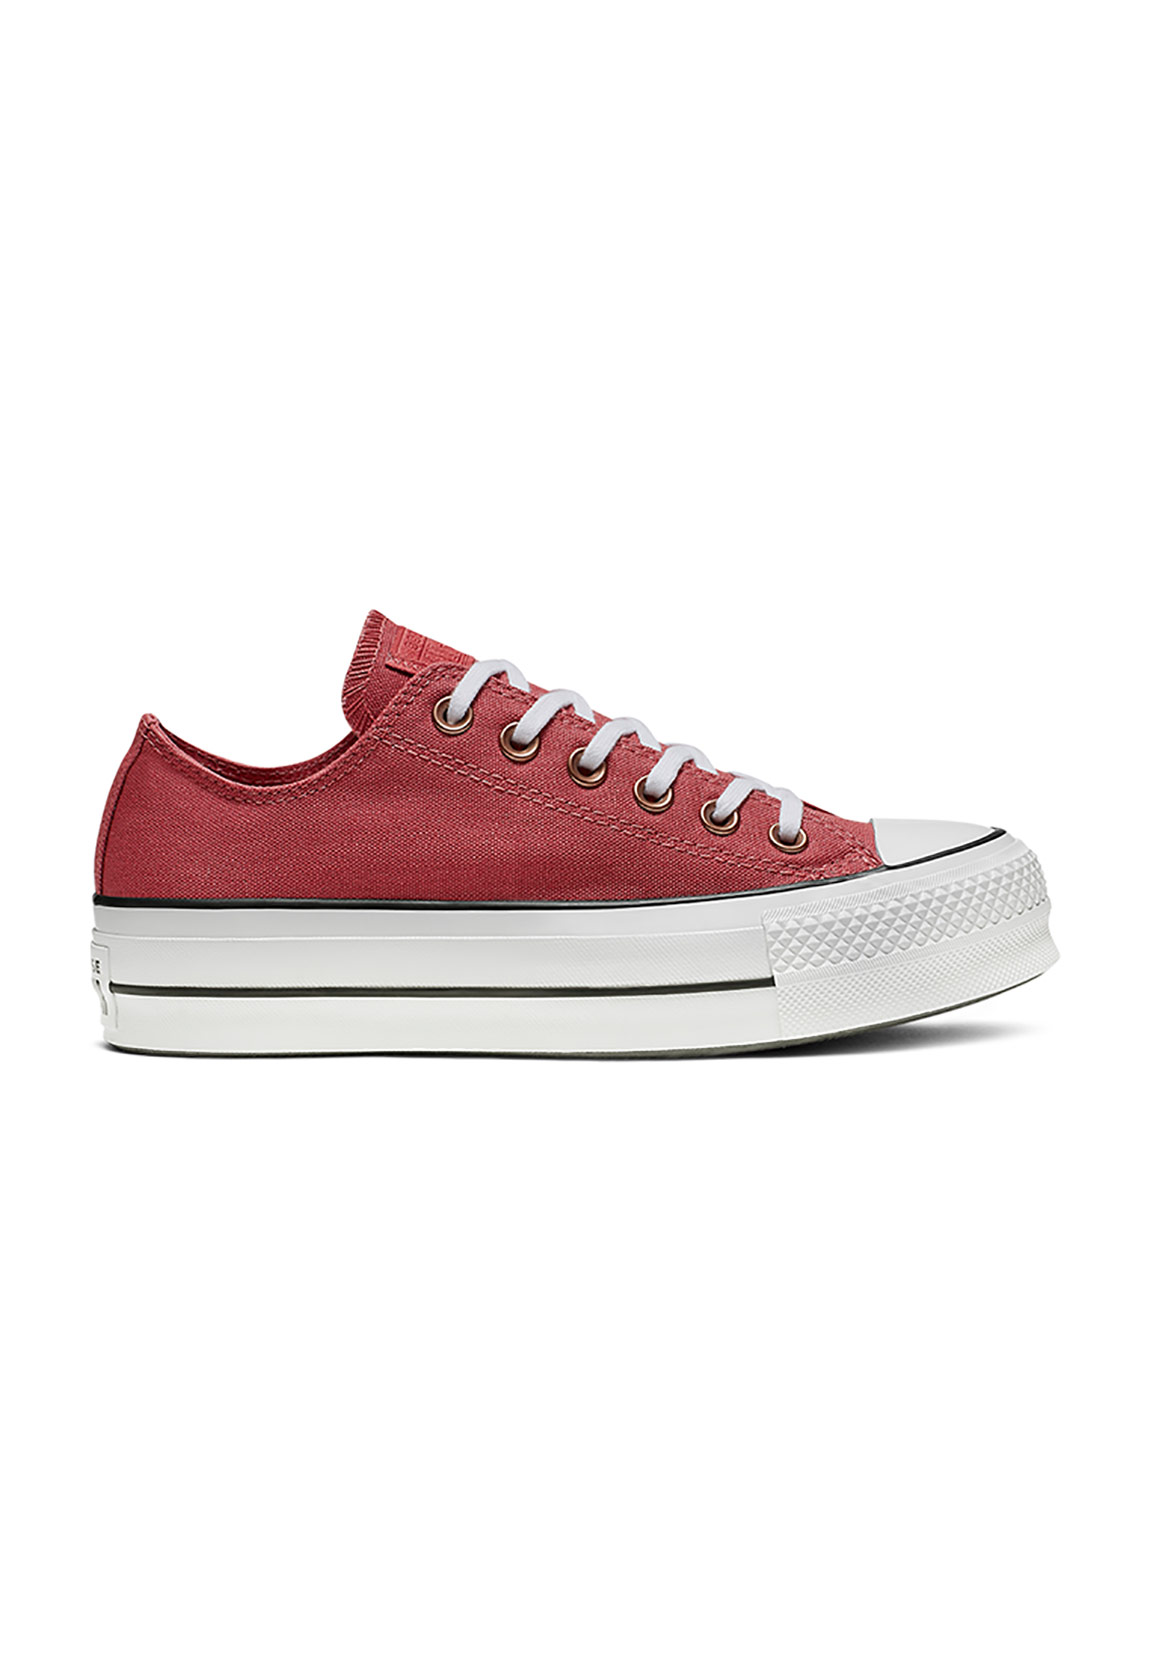 Details about Converse Chucks CT Lift Ox 564996C Red